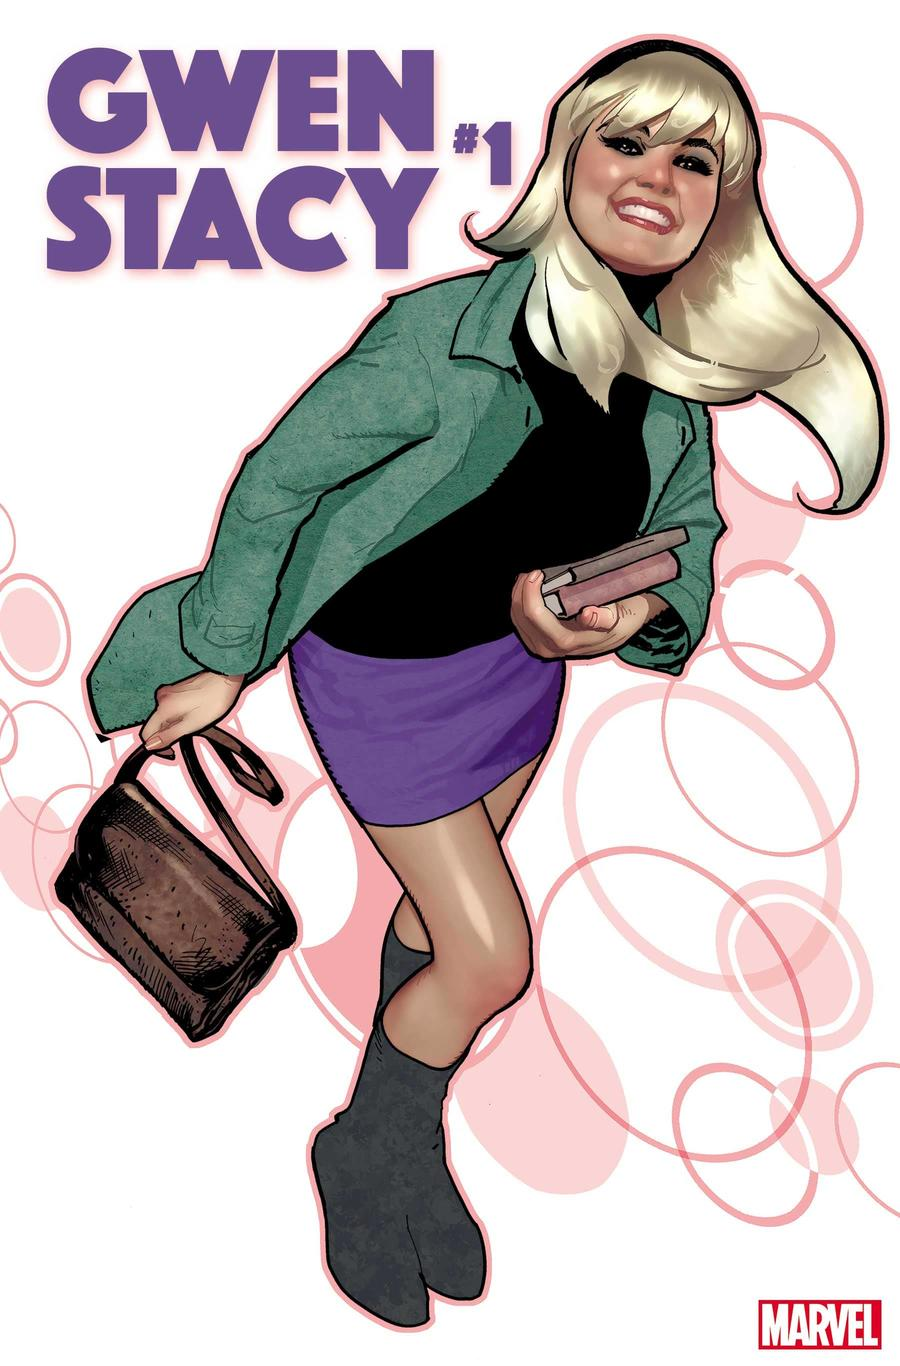 GWEN STACY #1 cover by Adam Hughes